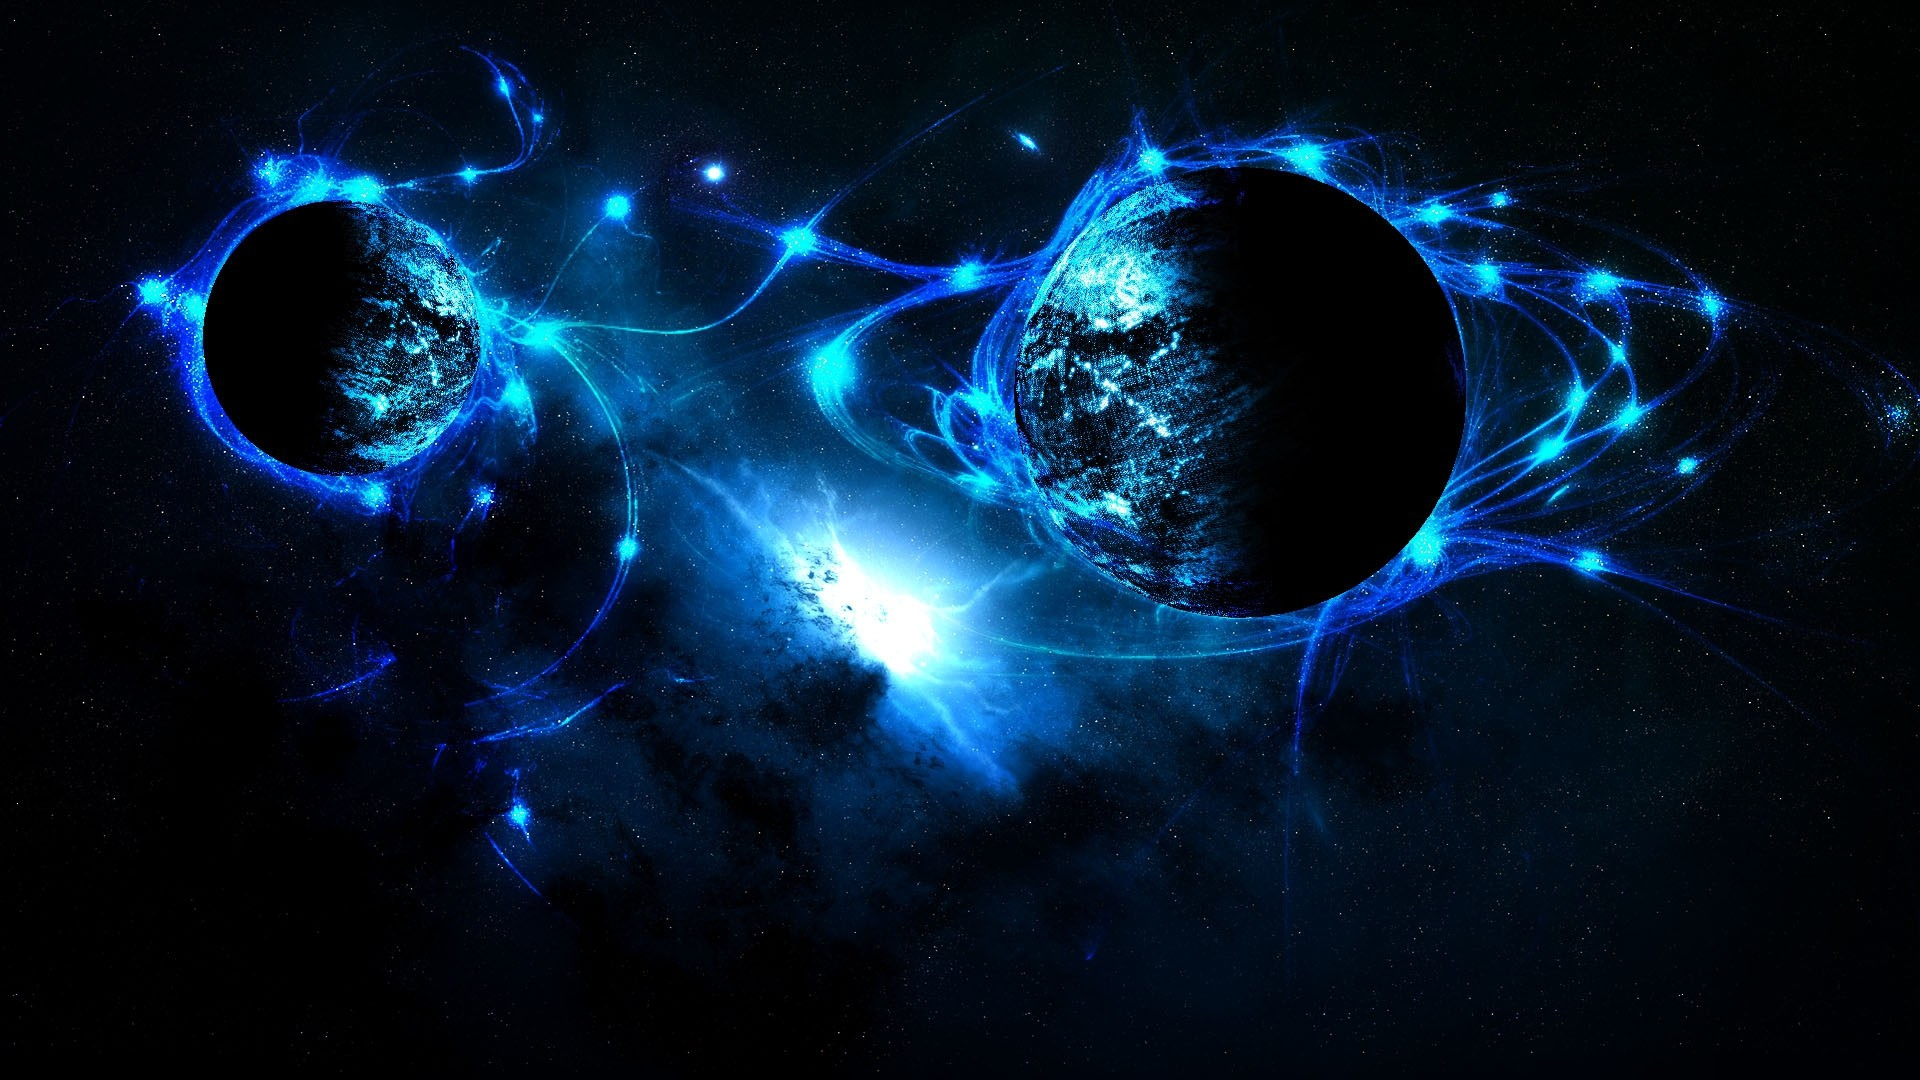 Sci-fi outer space planets stars wallpaper | 1920x1080 | 38861 ...